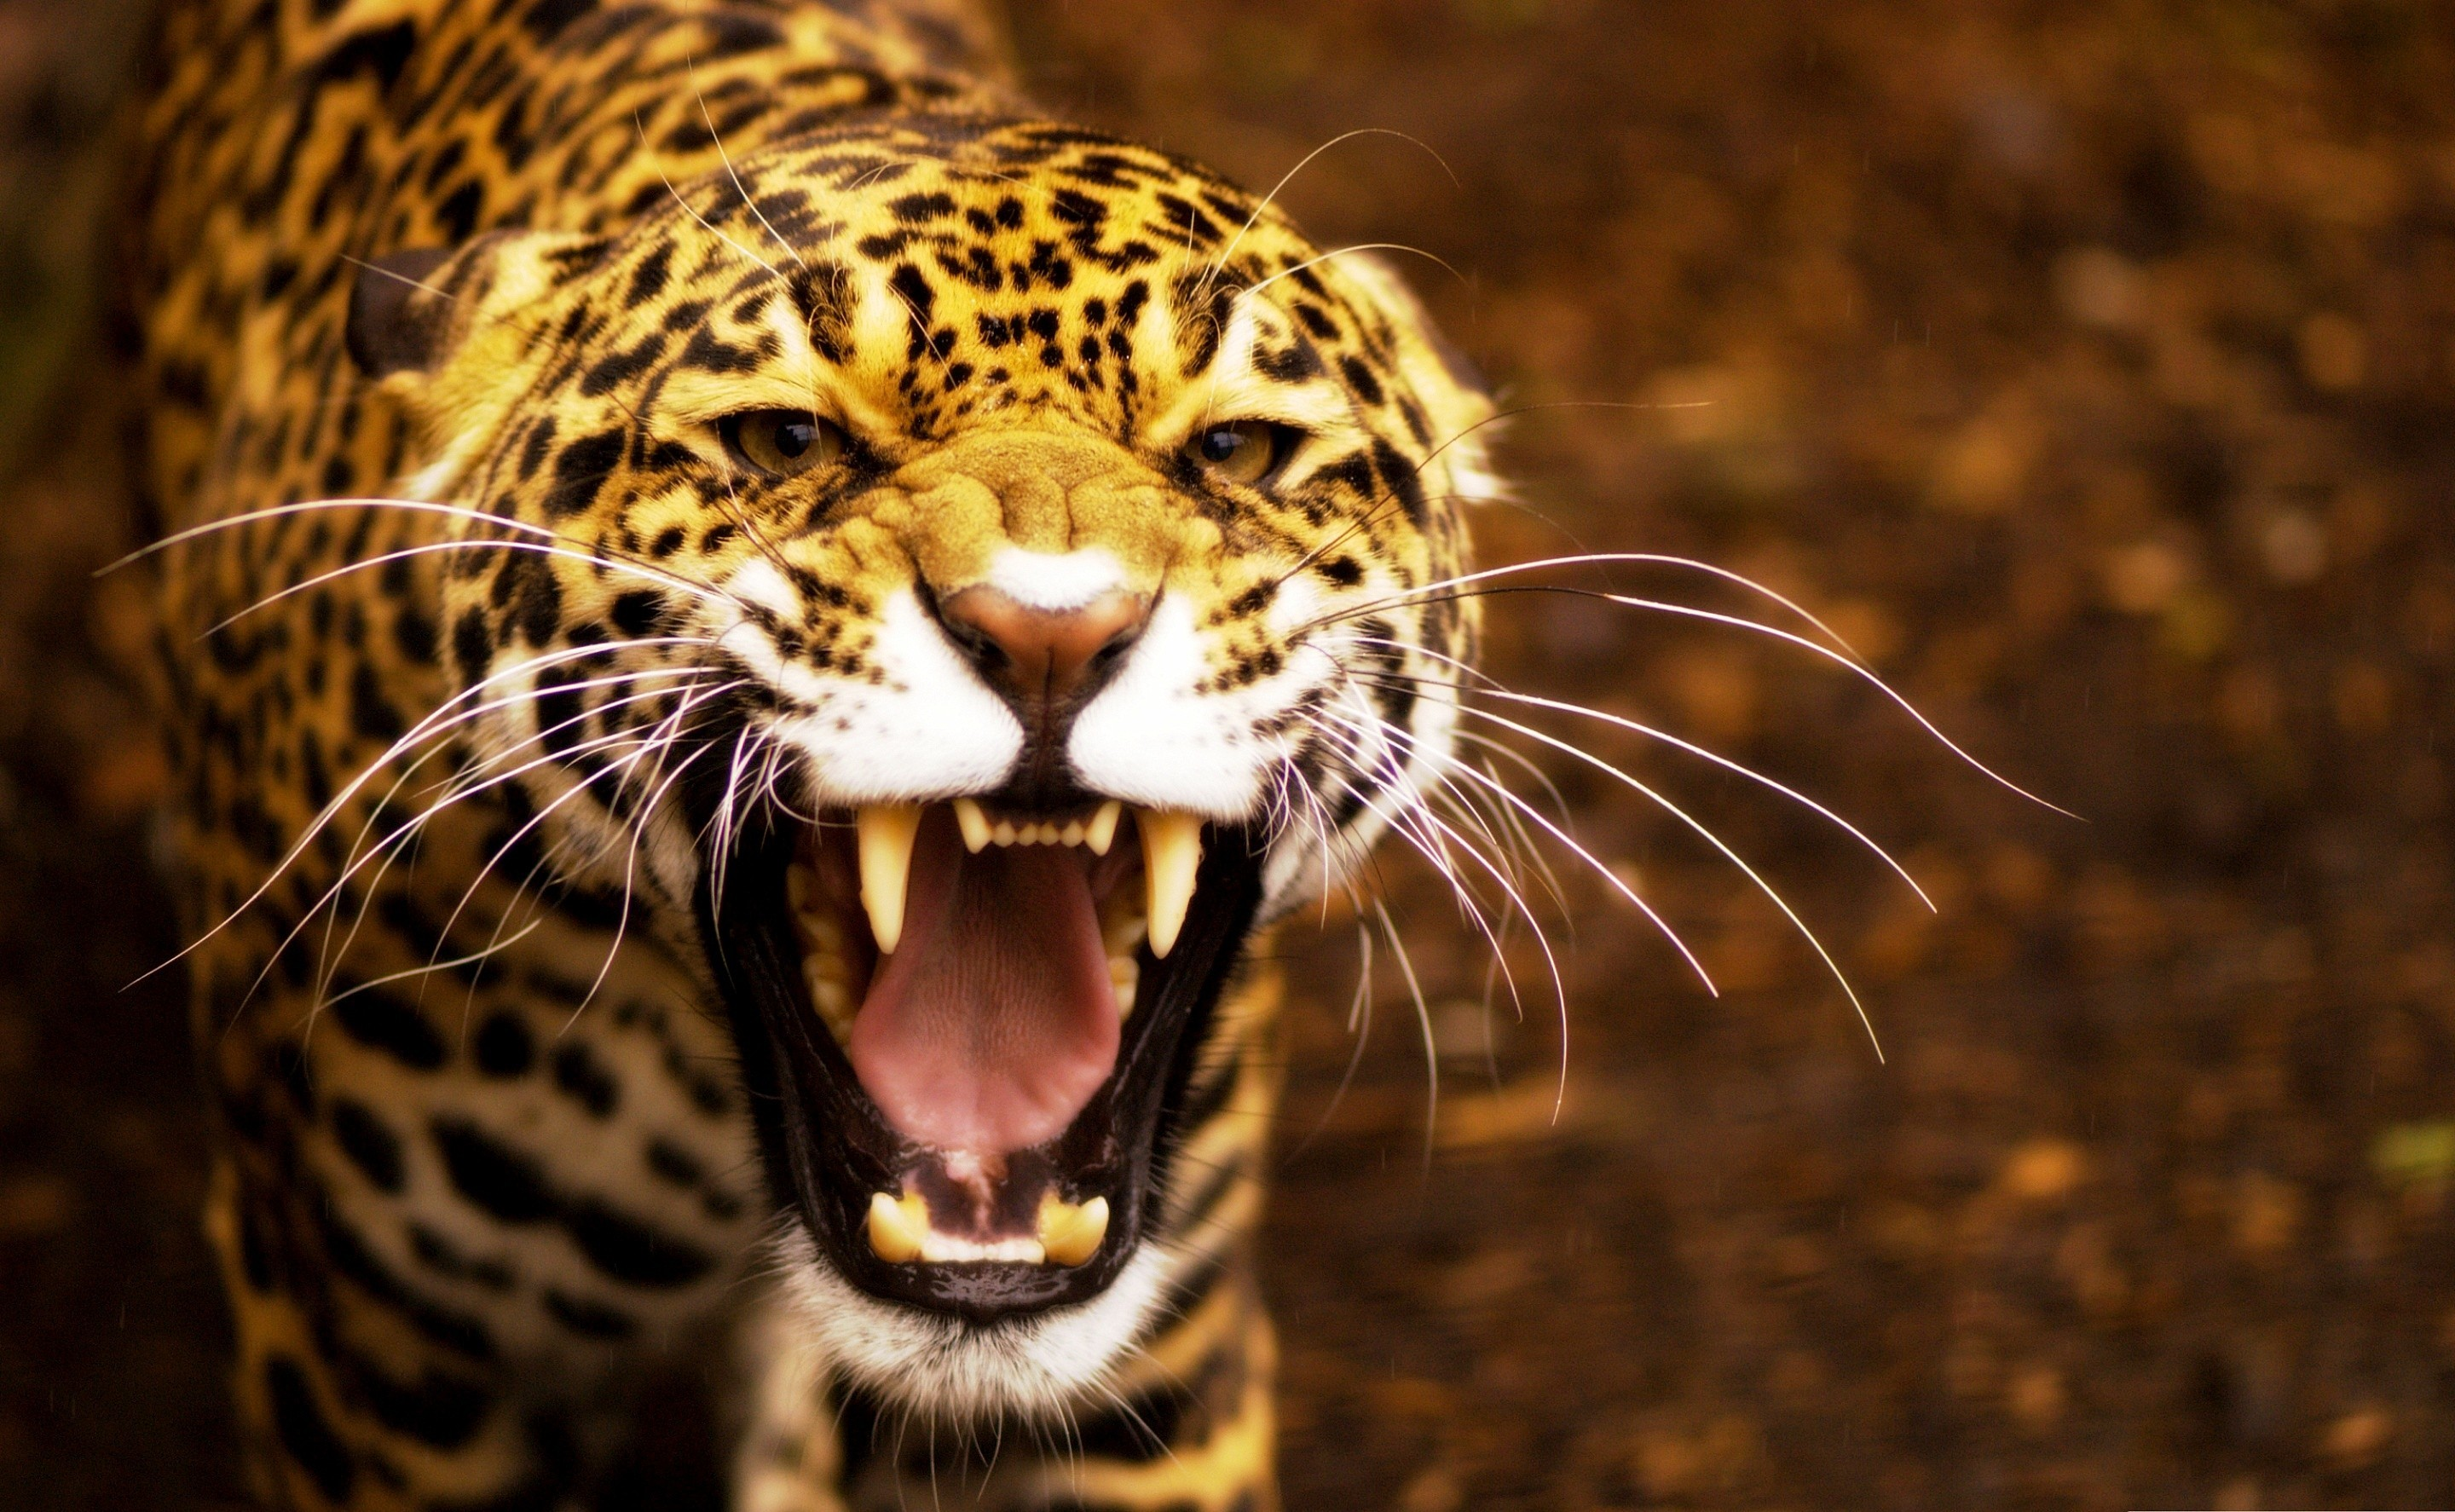 Tiere jaguar wallpaper 9282 pc de - Jaguar animal hd wallpapers ...